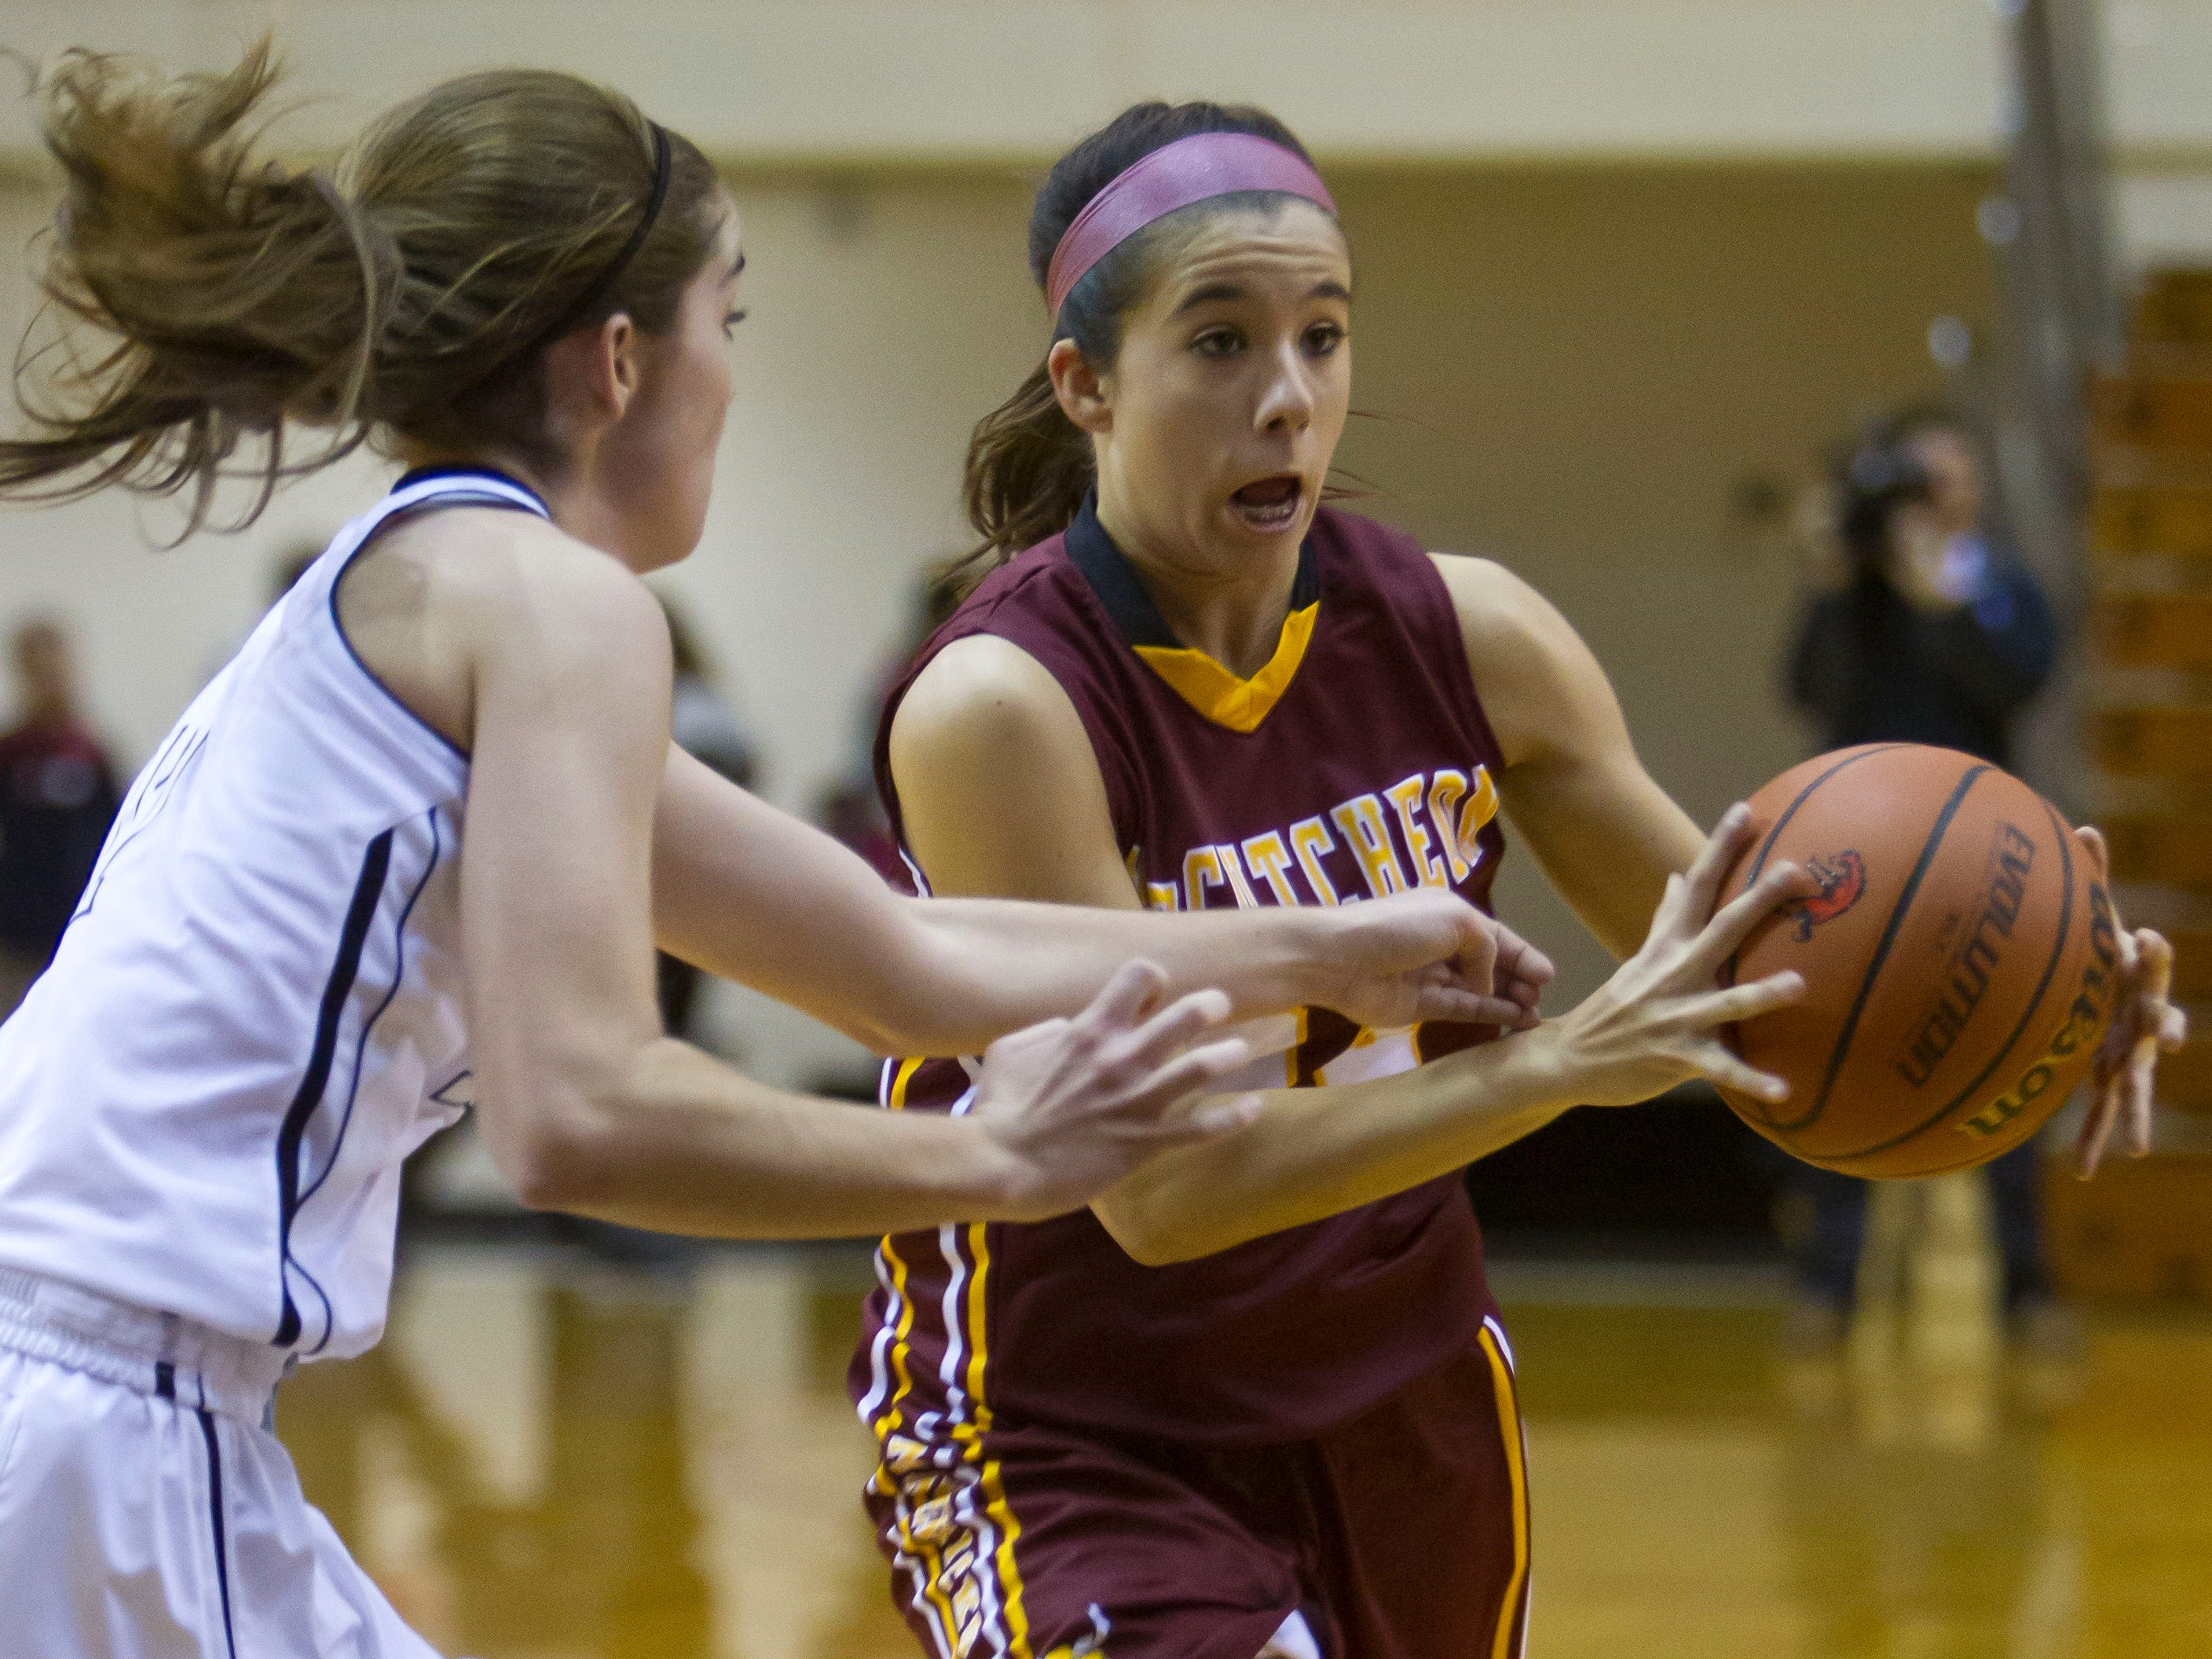 McCutcheon's Kerstyn Lowery, 24, drives to the hoop around Lafayette Jeff's Rylie Pittard, 12, Thursday, January 16, 2014, at Jeff High in Lafayette. McCutcheon won 56-40.